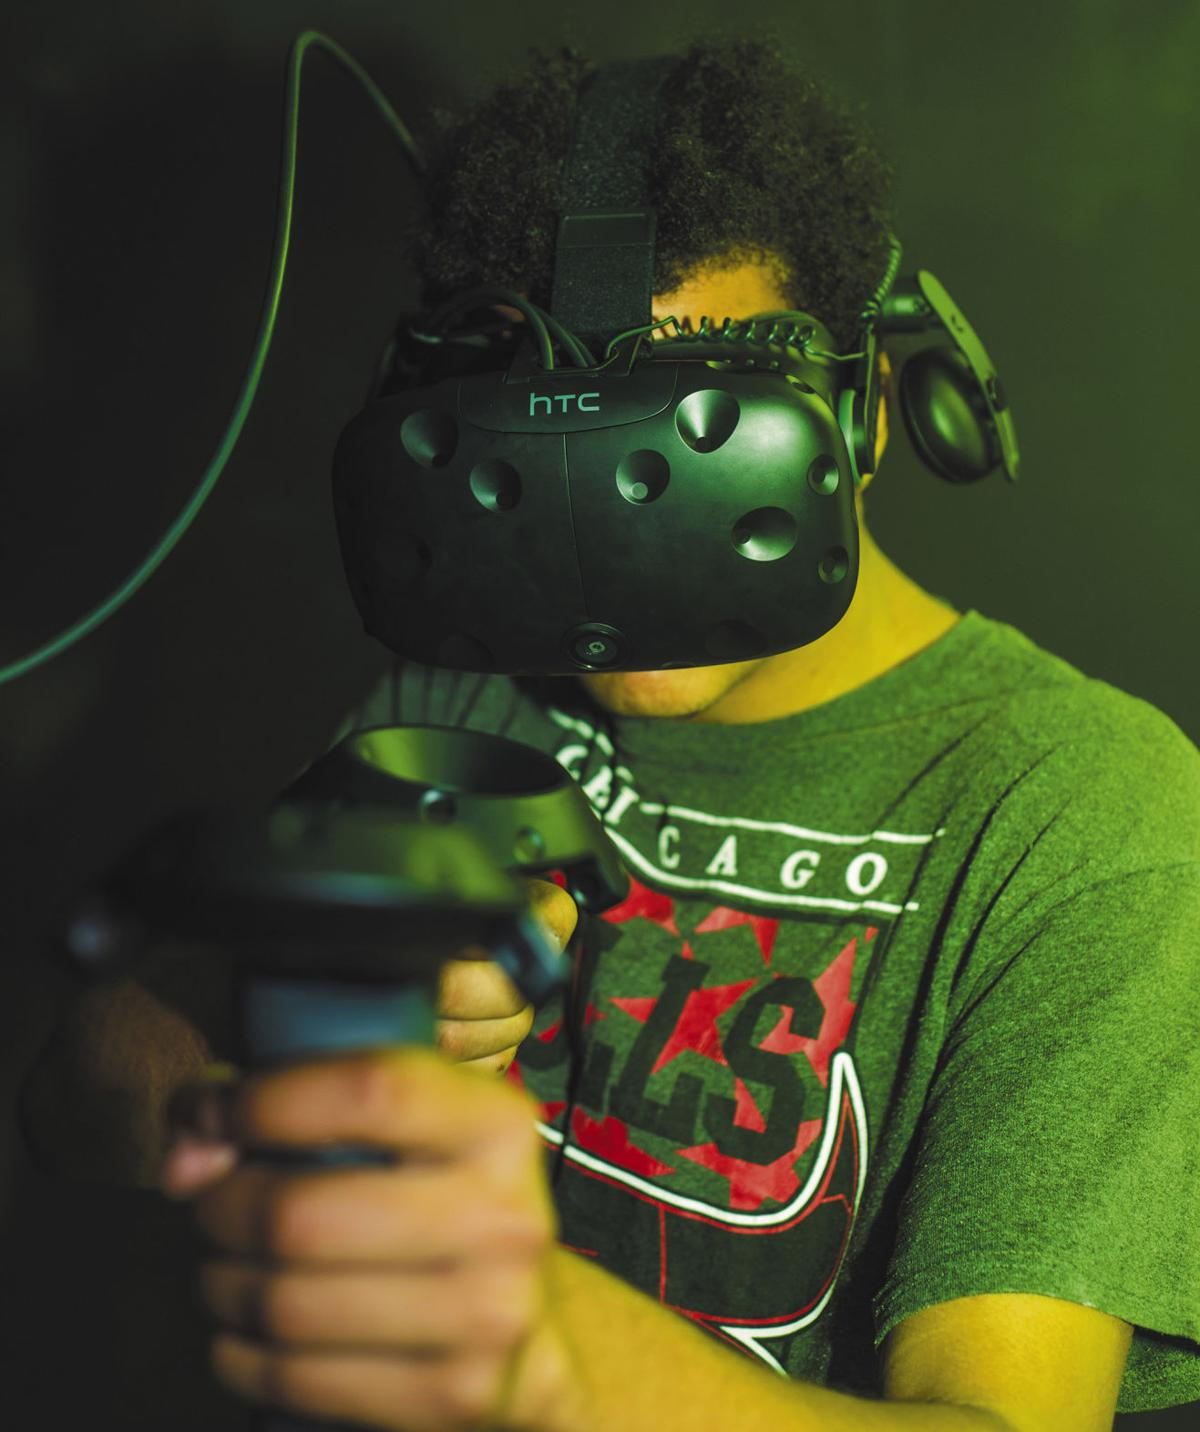 Step Into The Light Vr: Fantasy Escape Room Owner Unveils Virtual Reality Gaming